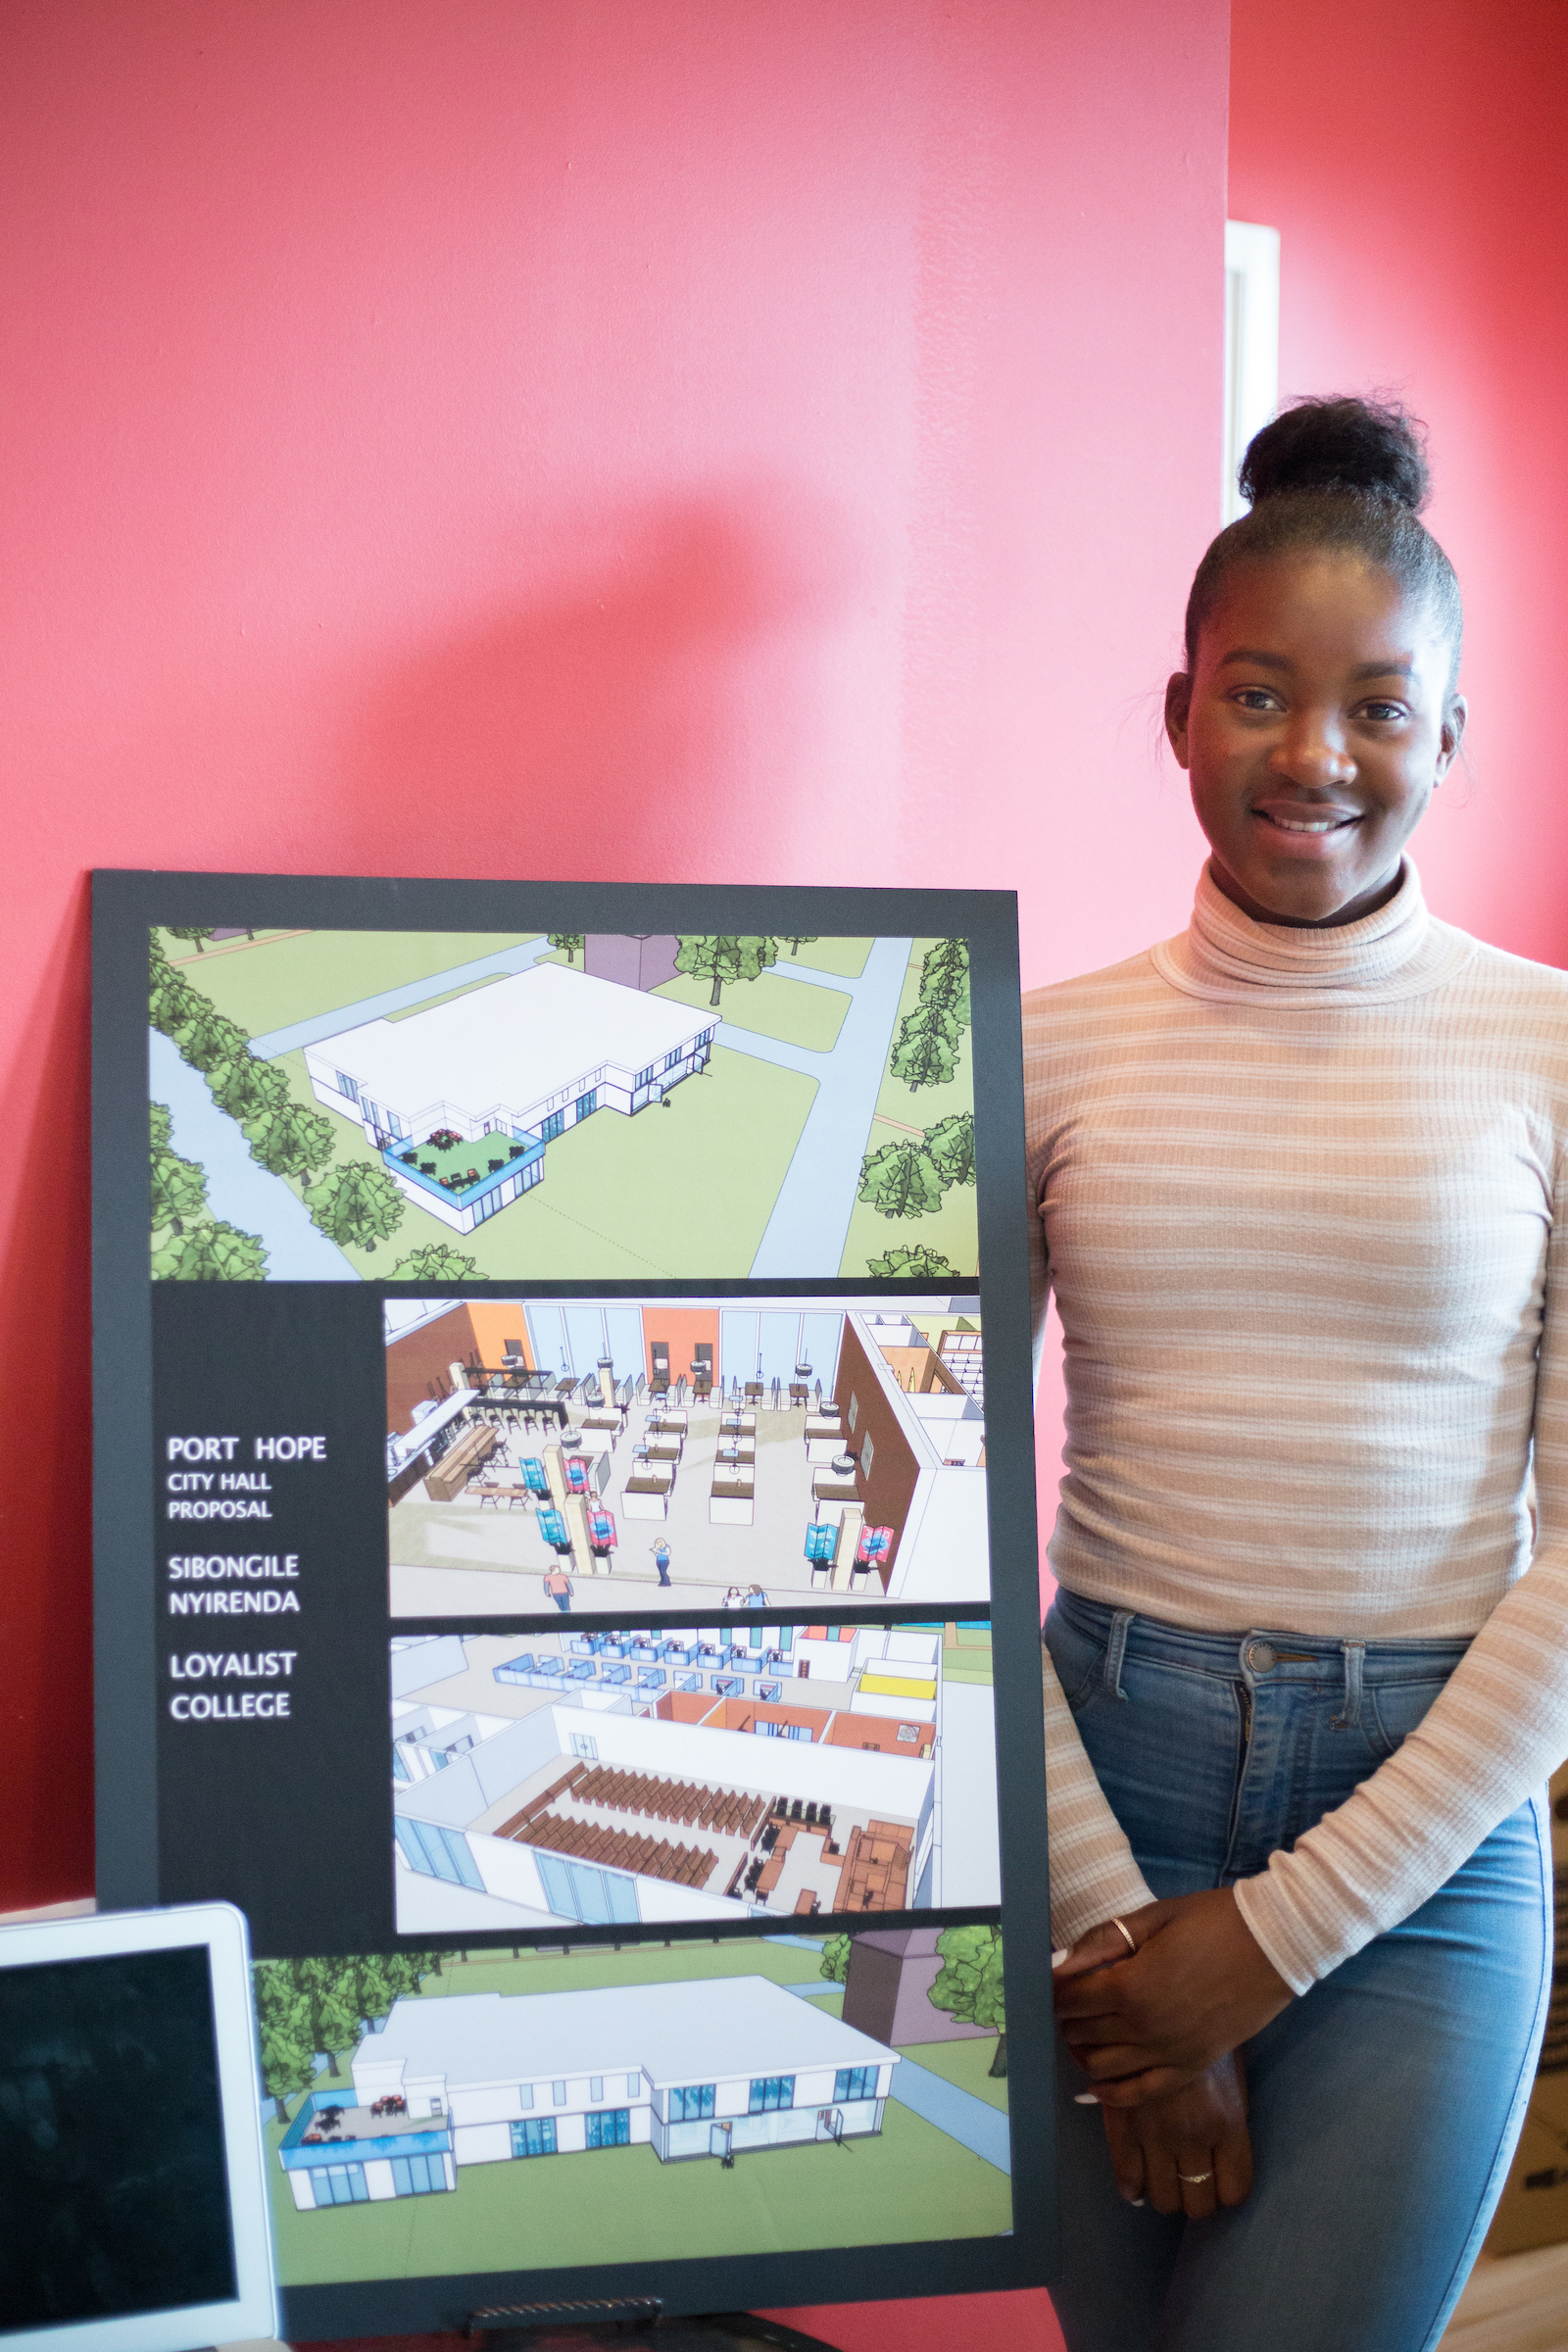 A student in a white sweater and jeans stands in front of her architectural drawings. The drawings show landscapes and structures.